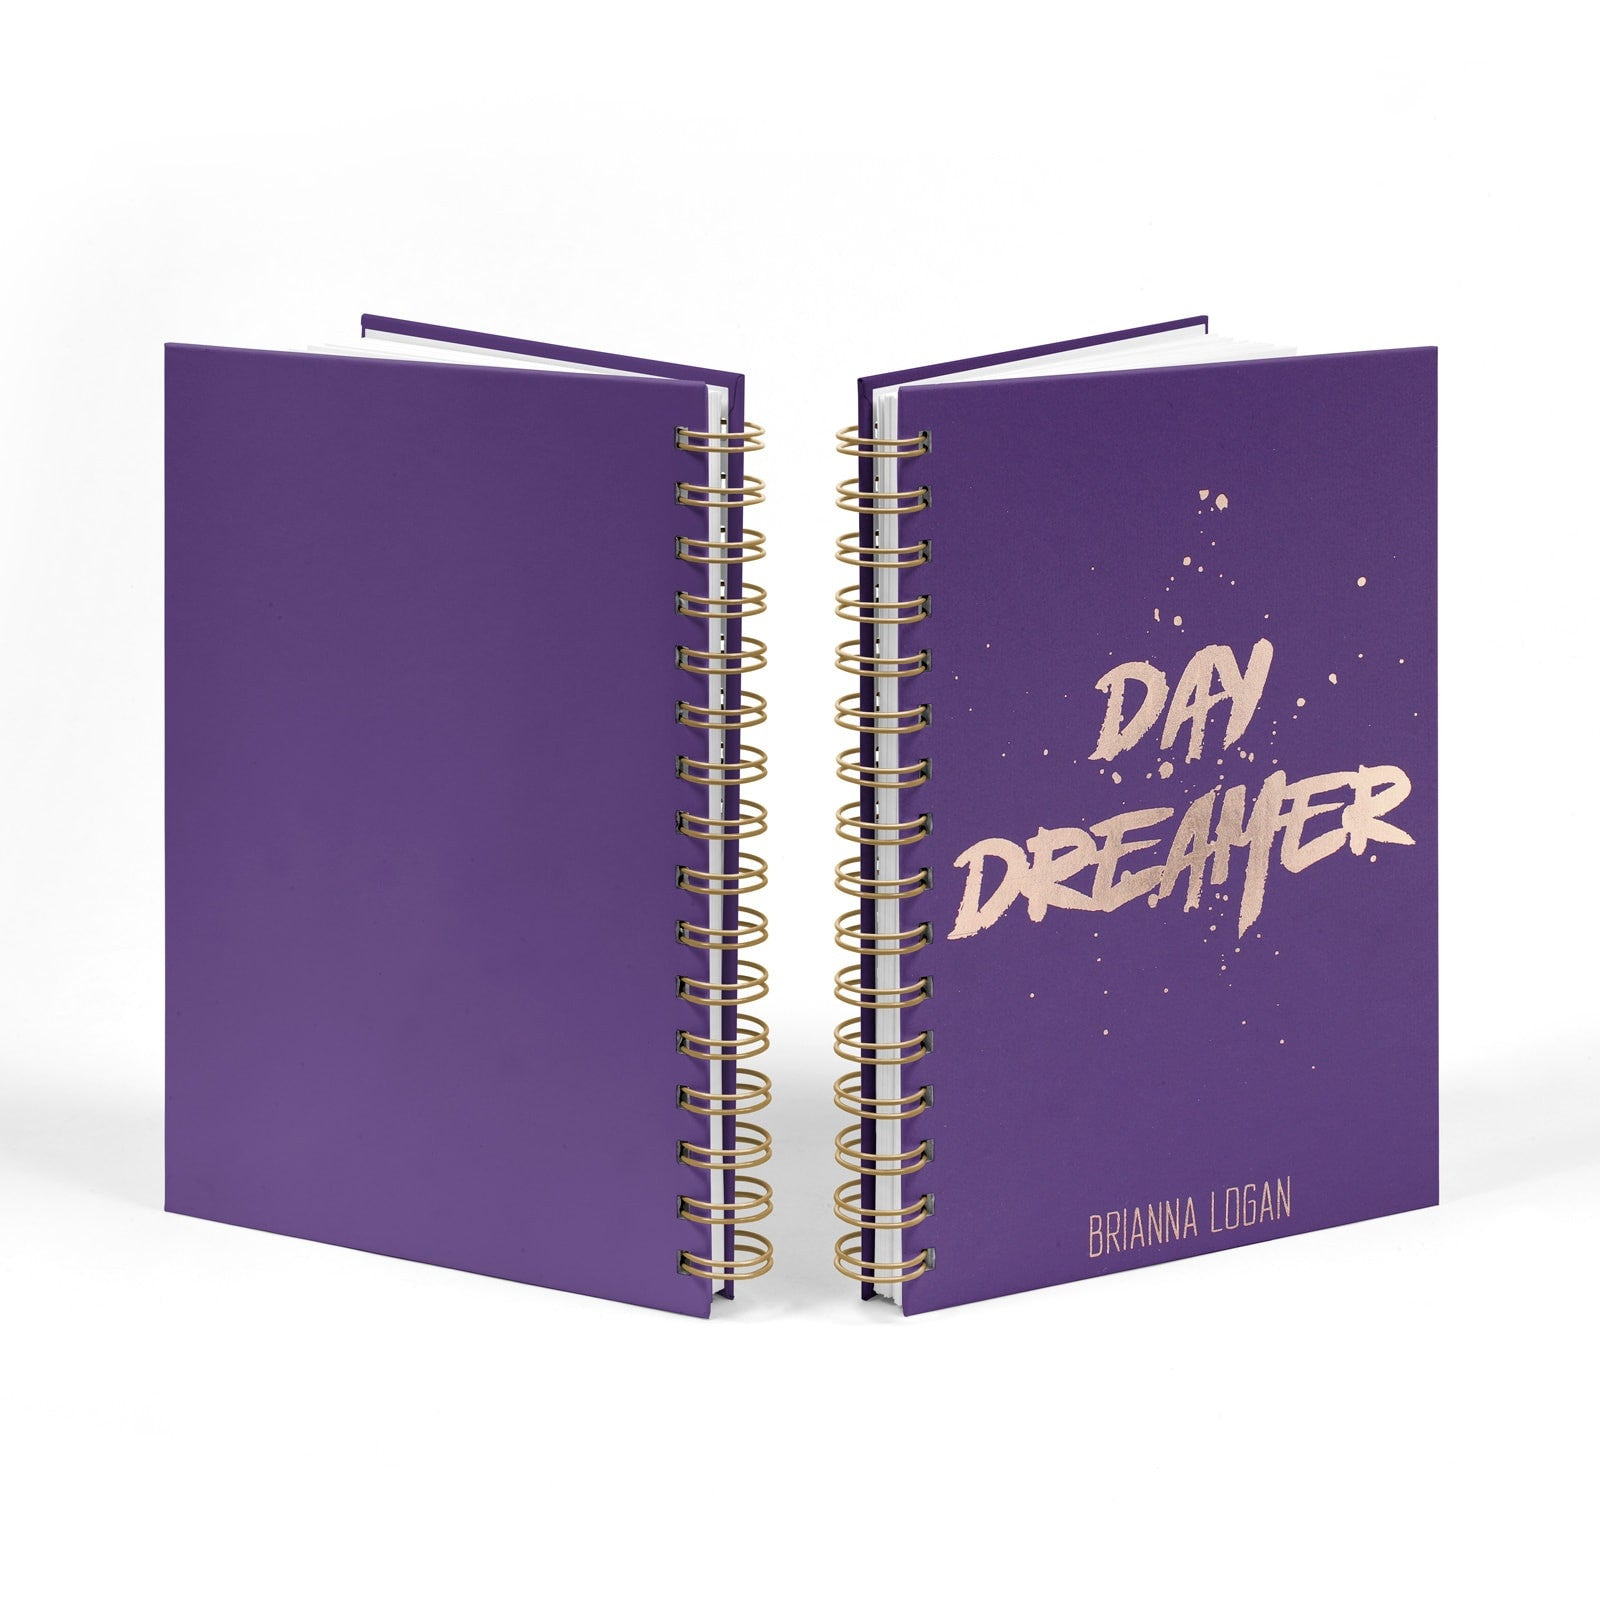 Personalised Rose Gold Foil Day Dreamer Notebook Front & Back